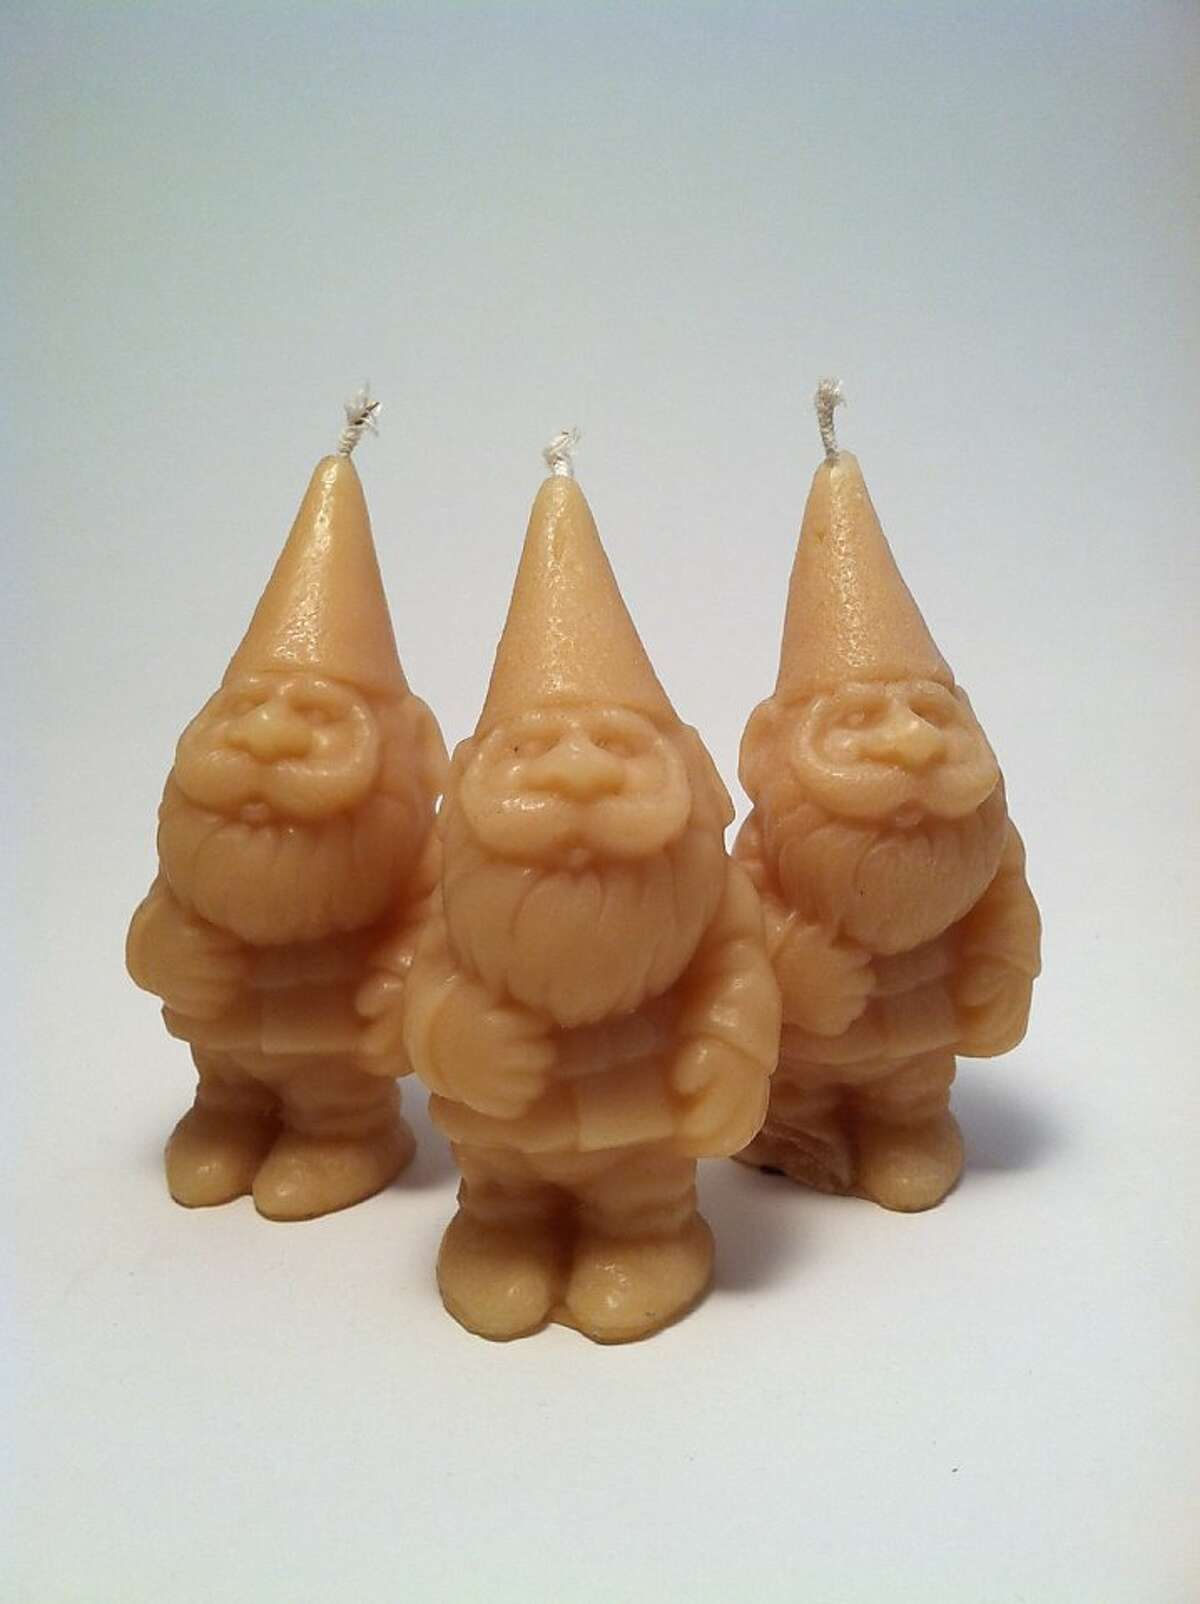 Beeswax gnome candles: These cute little gnomes warm my heart. They are handcrafted of 100 percent locally sourced beeswax that burns cleaner, brighter and longer than any other candle wax. (www.atomicgardenoakland.com)